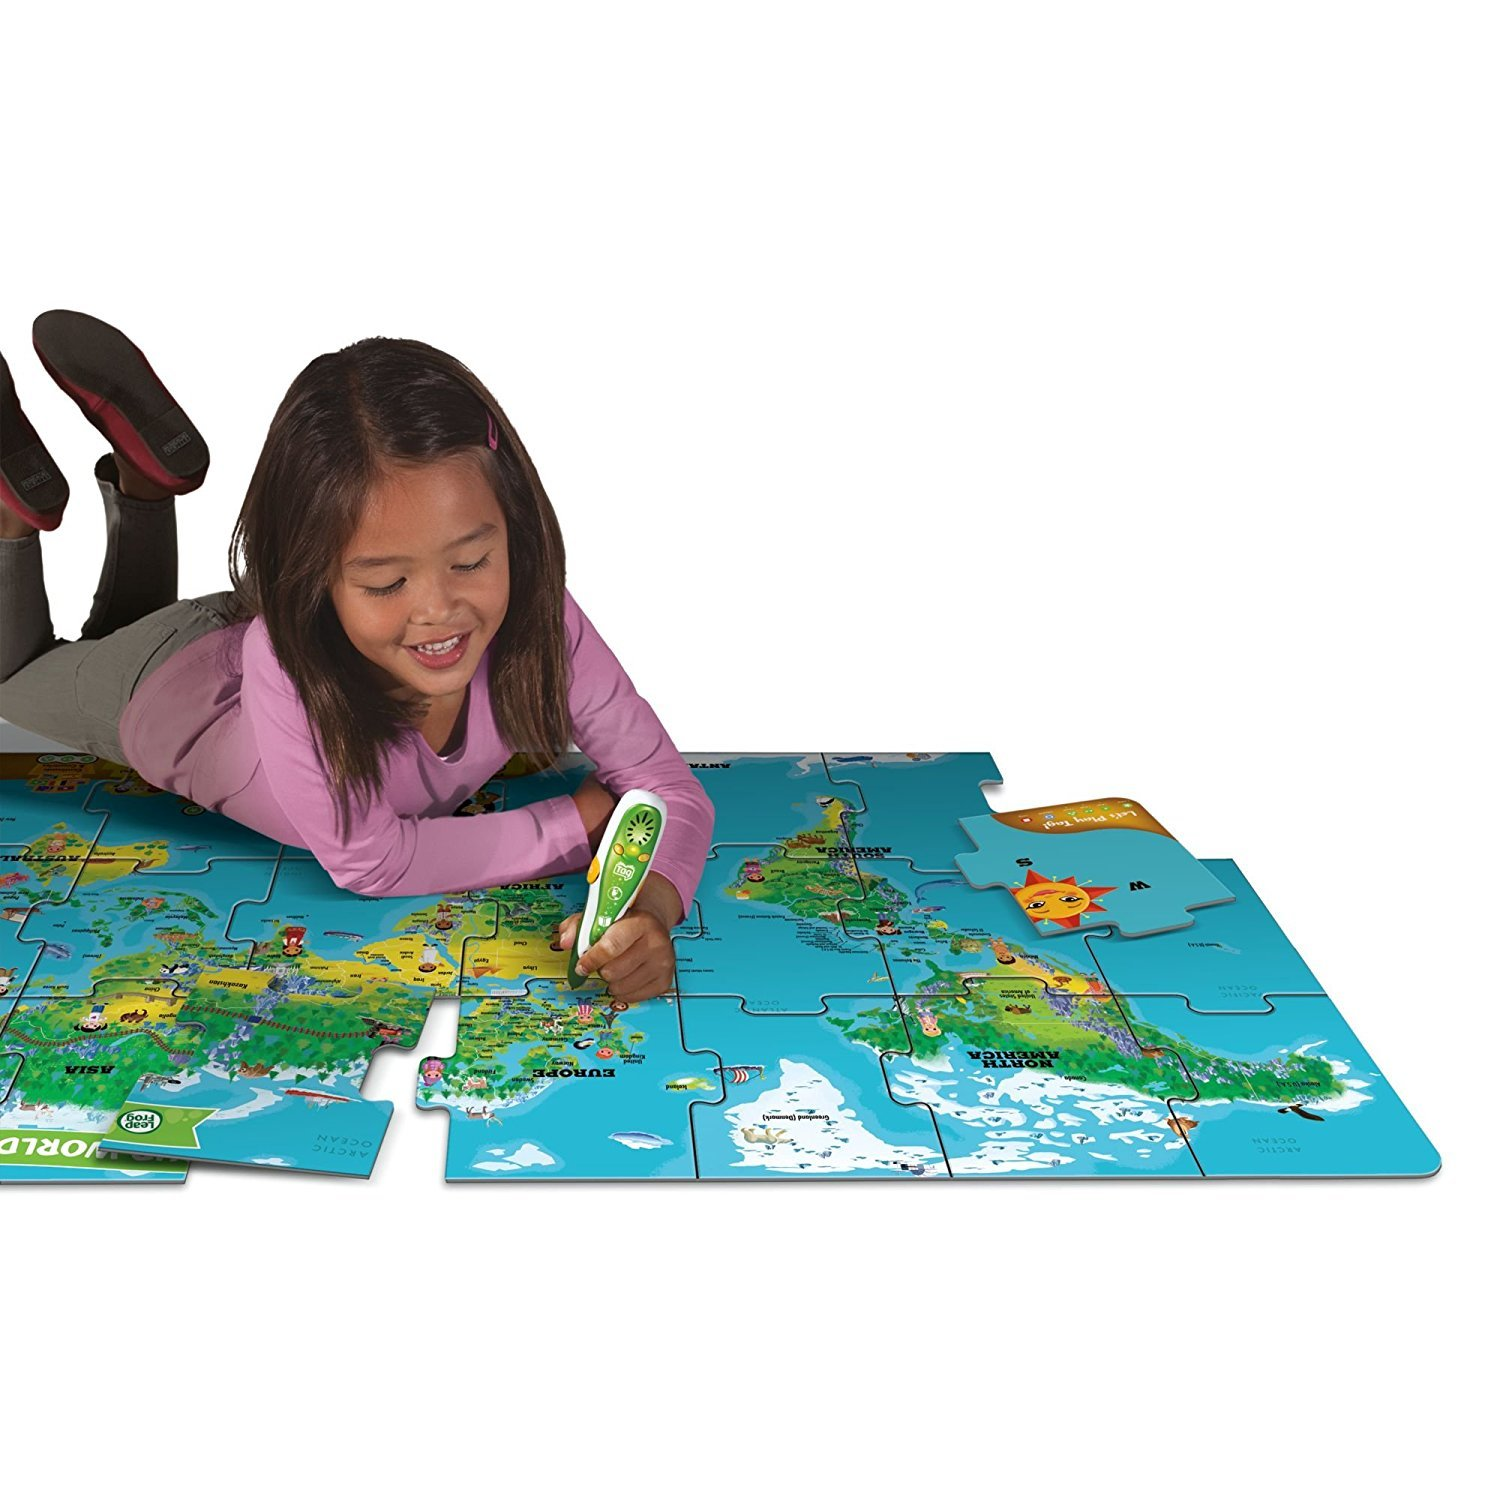 Leapfrog leapreader discovery set world map jumbo puzzle toy leapfrog leapreader discovery set world map jumbo puzzle works with tag image gumiabroncs Image collections